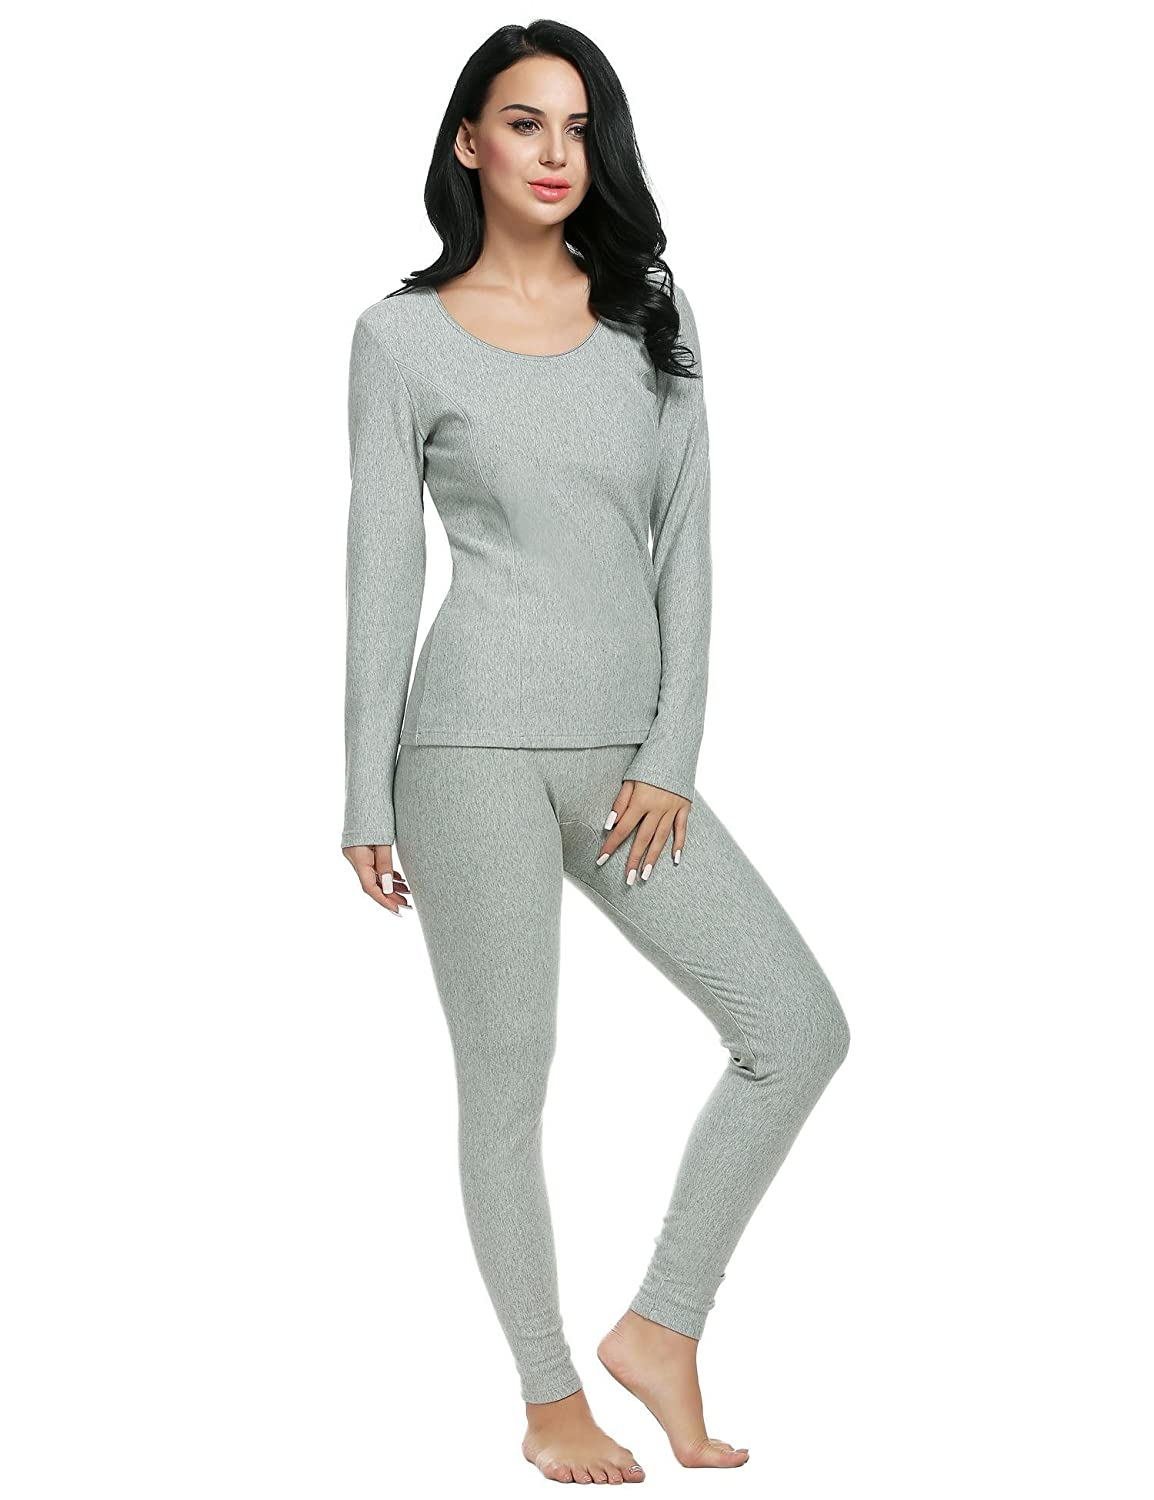 Langle Women's Thermal Underwear Set Soft Viscose Top and Smooth Knit Bottoms S-XXL LAMK007873